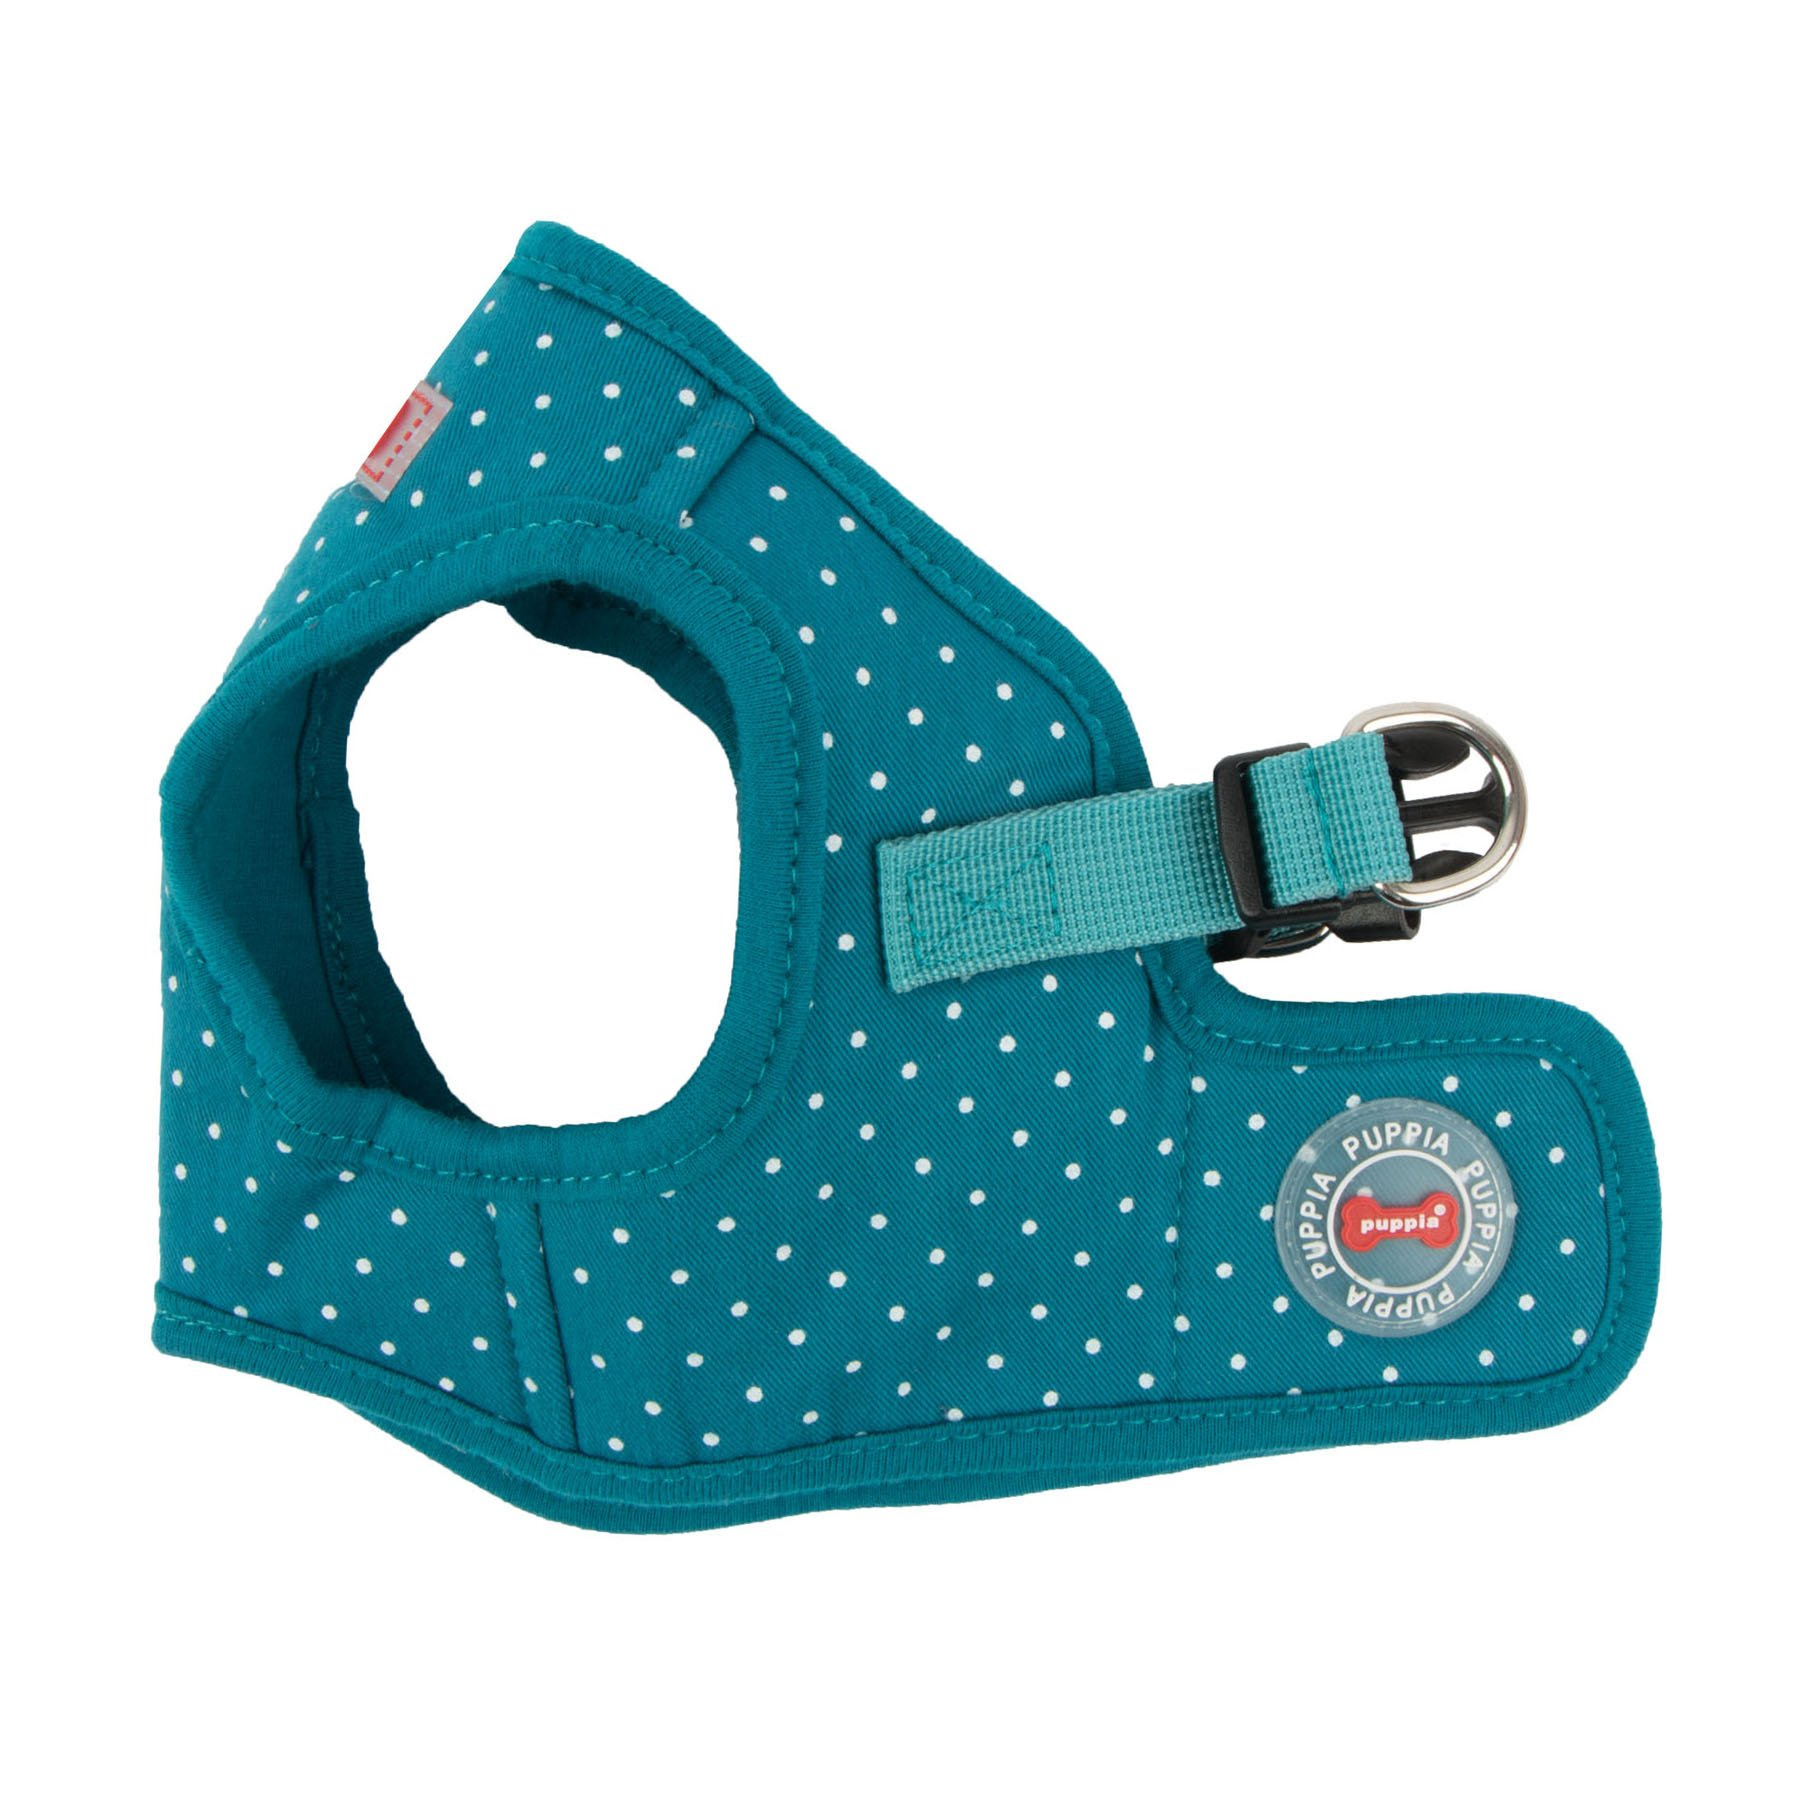 Puppia PARA-HB1529-TE-S Teal Dotty Harness II B Pet-Vest-Harnesses, Small by Puppia